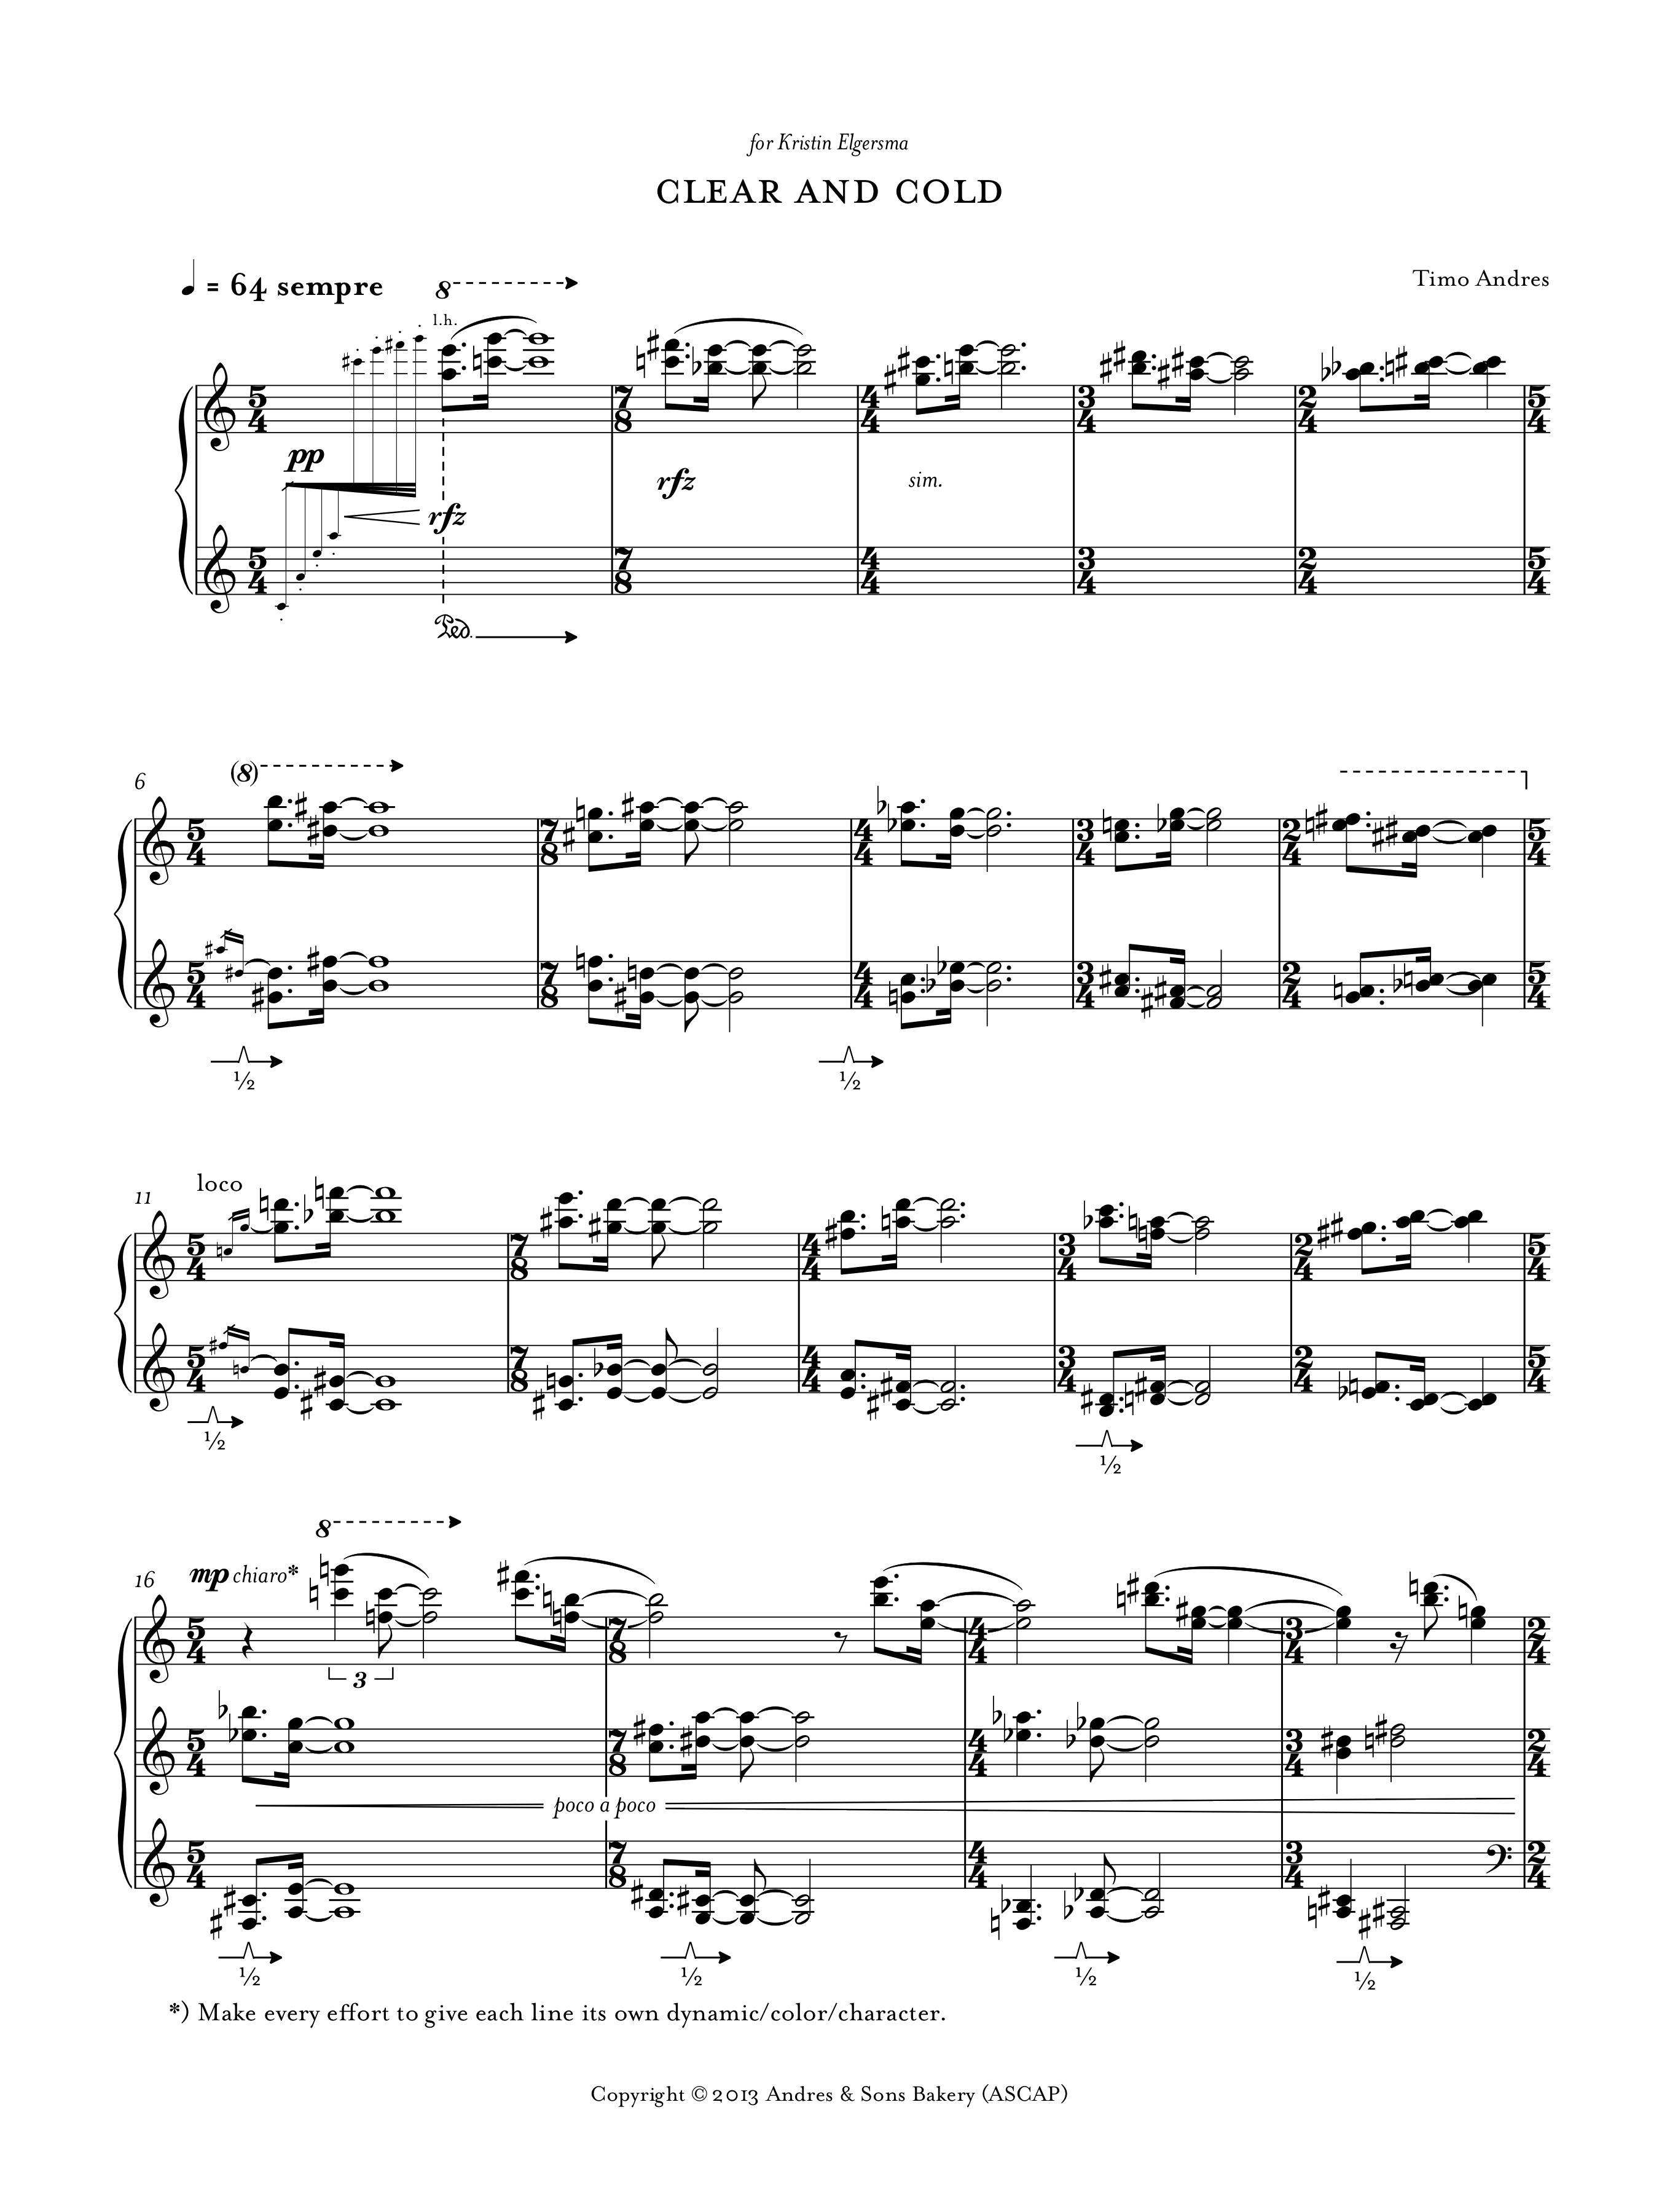 Clear and Cold, p. 1